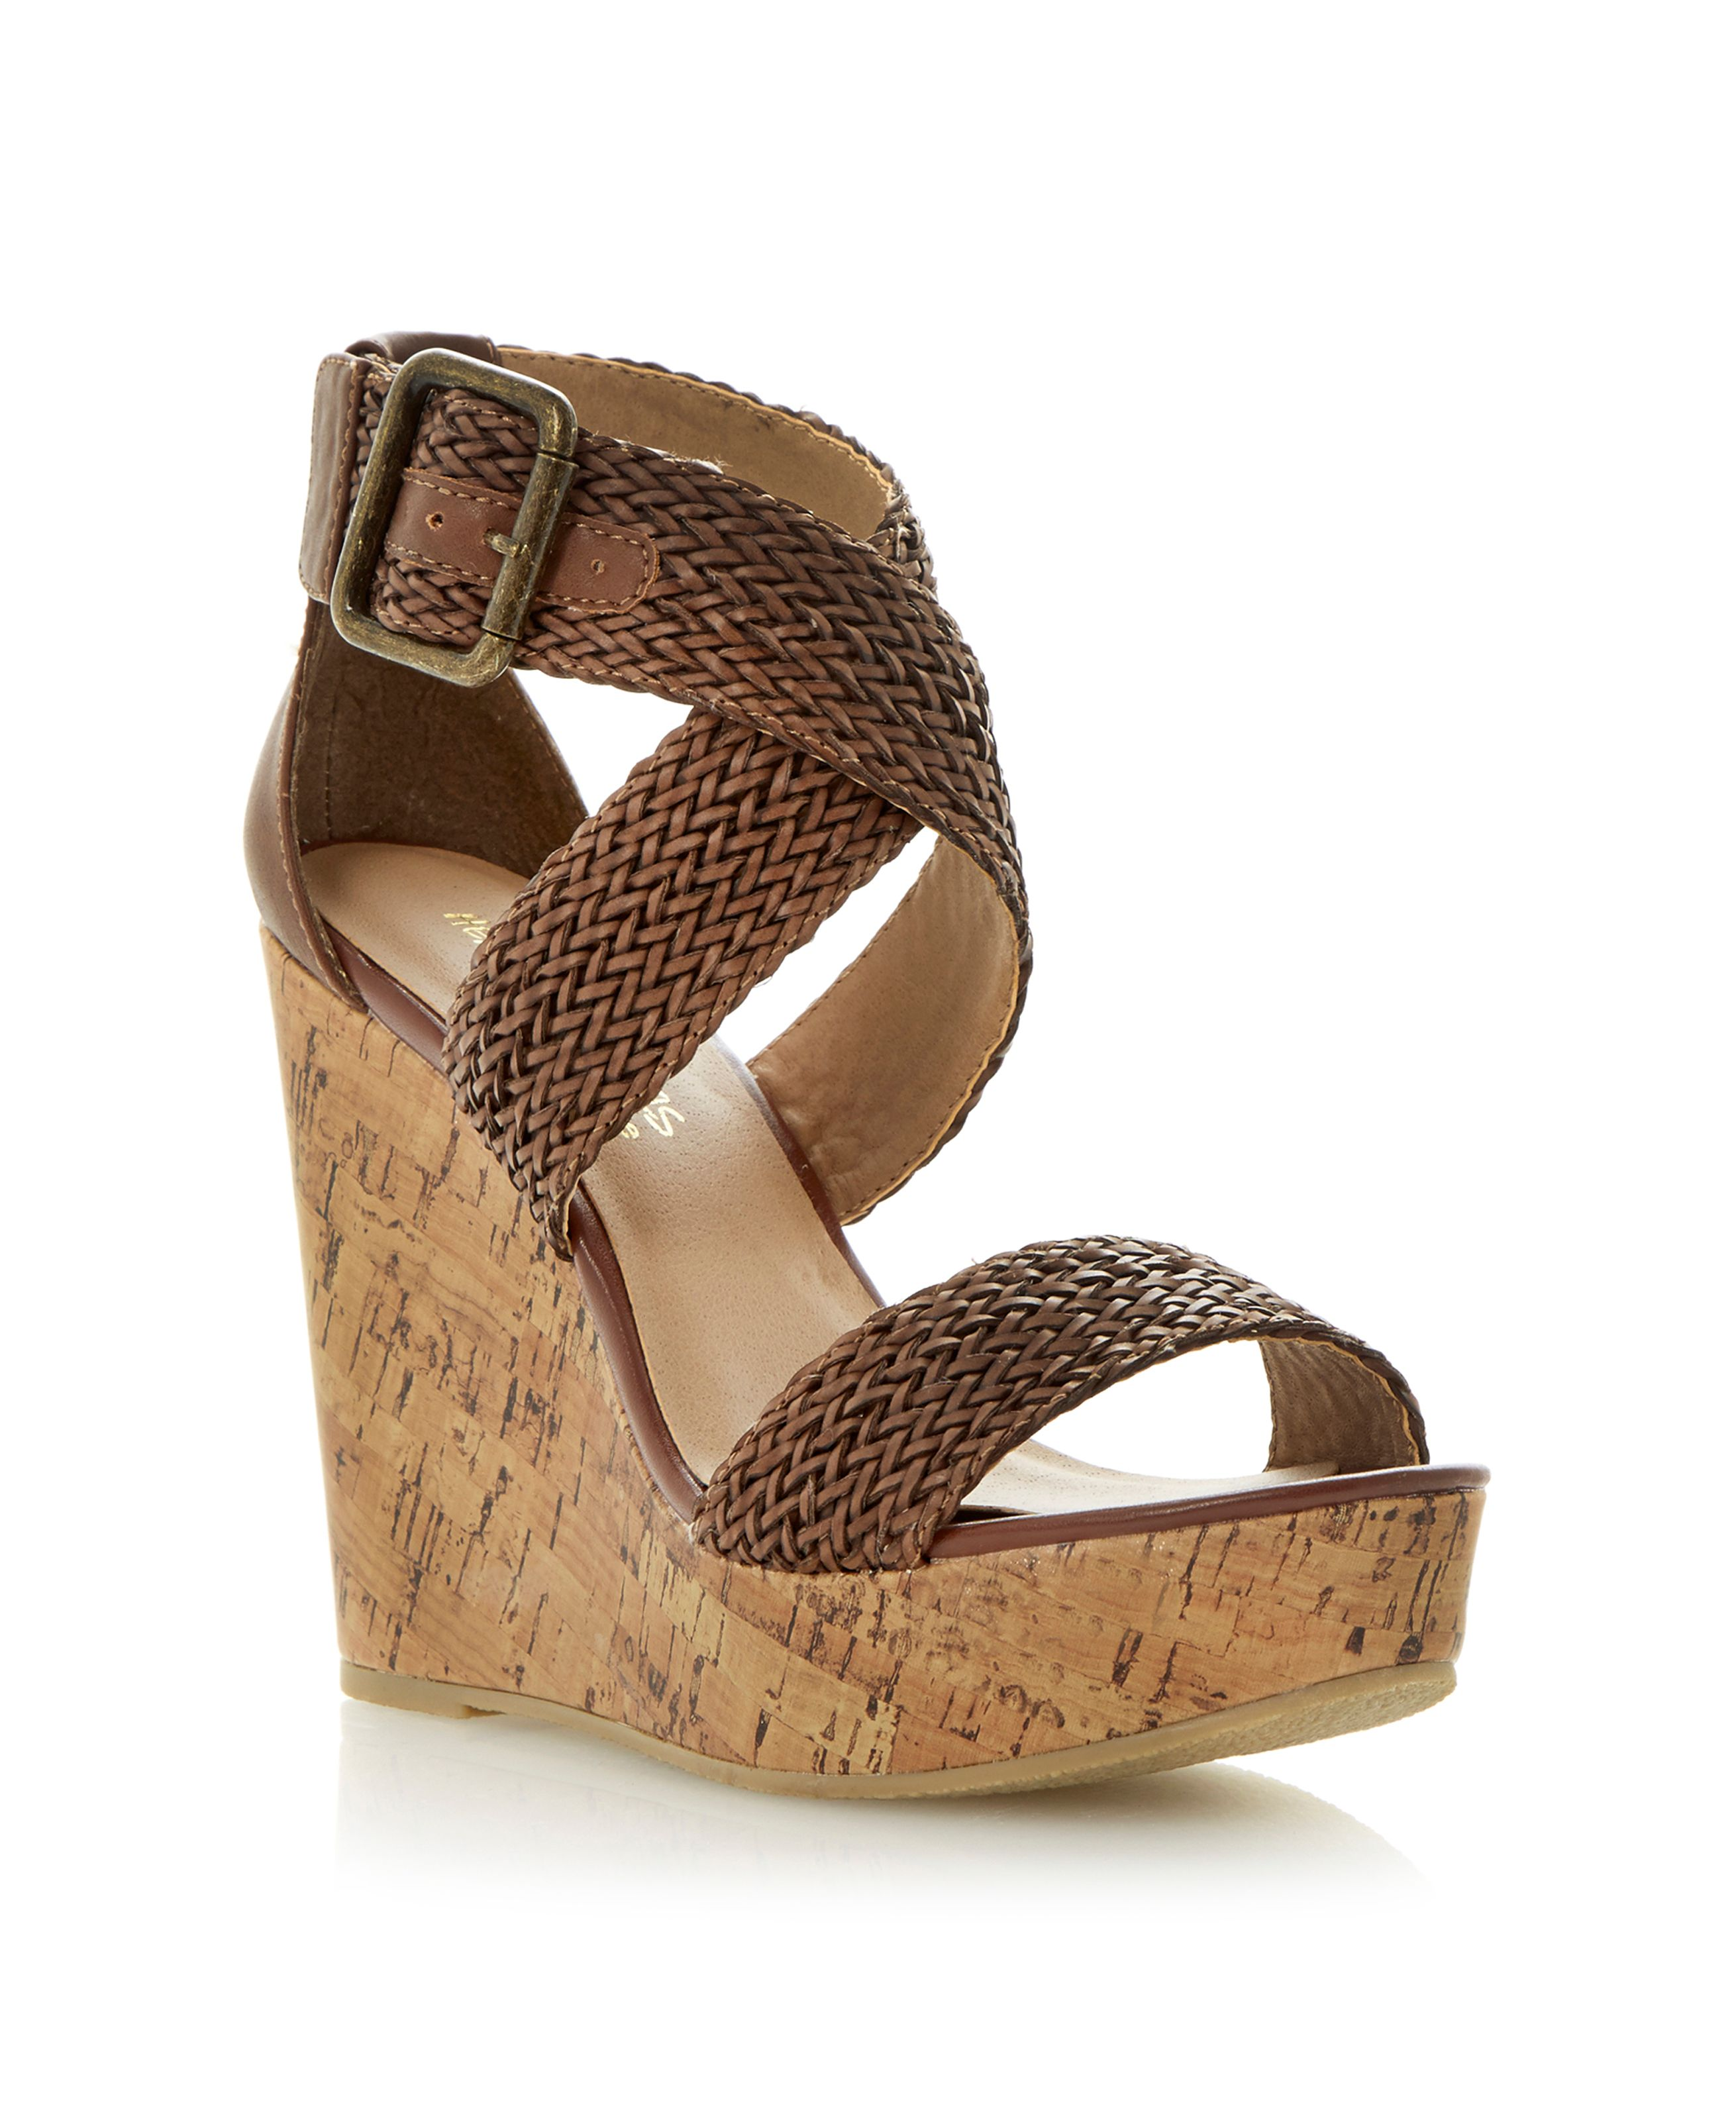 Garner wedge heel buckle sandals